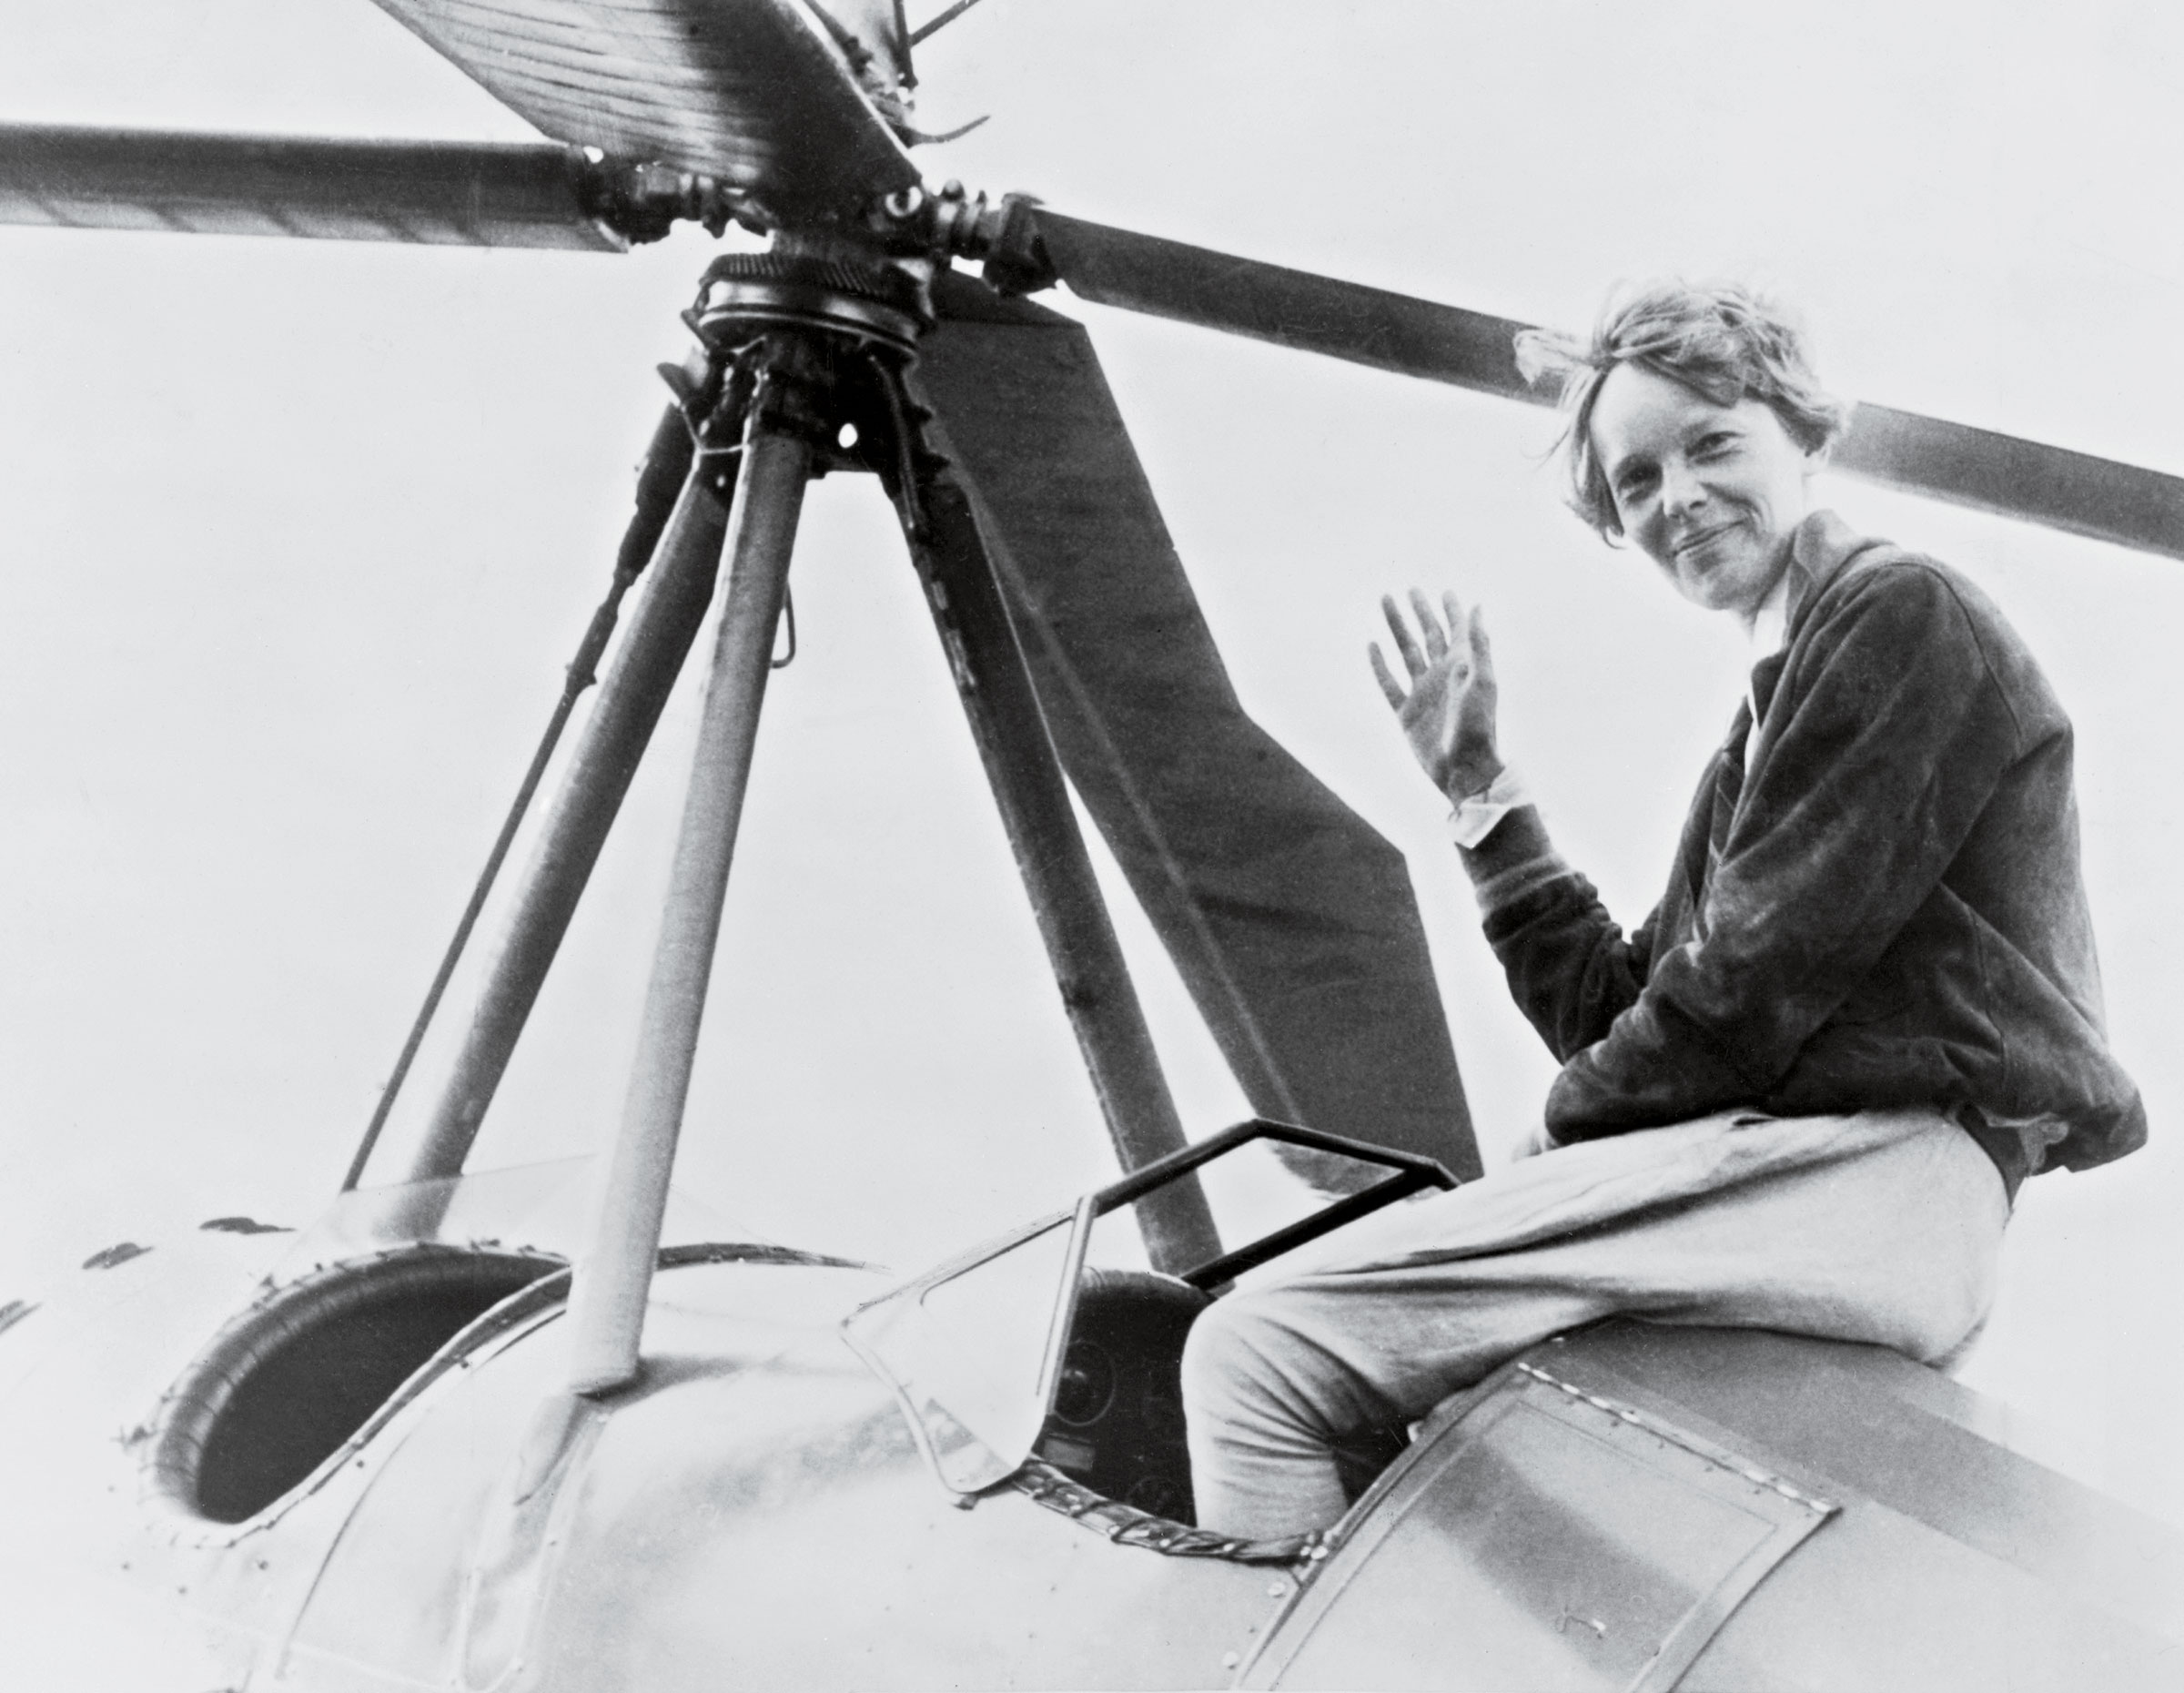 Amelia Earhart shortly after she became the first woman to complete a solo coast-to-coast flight, August 1932.